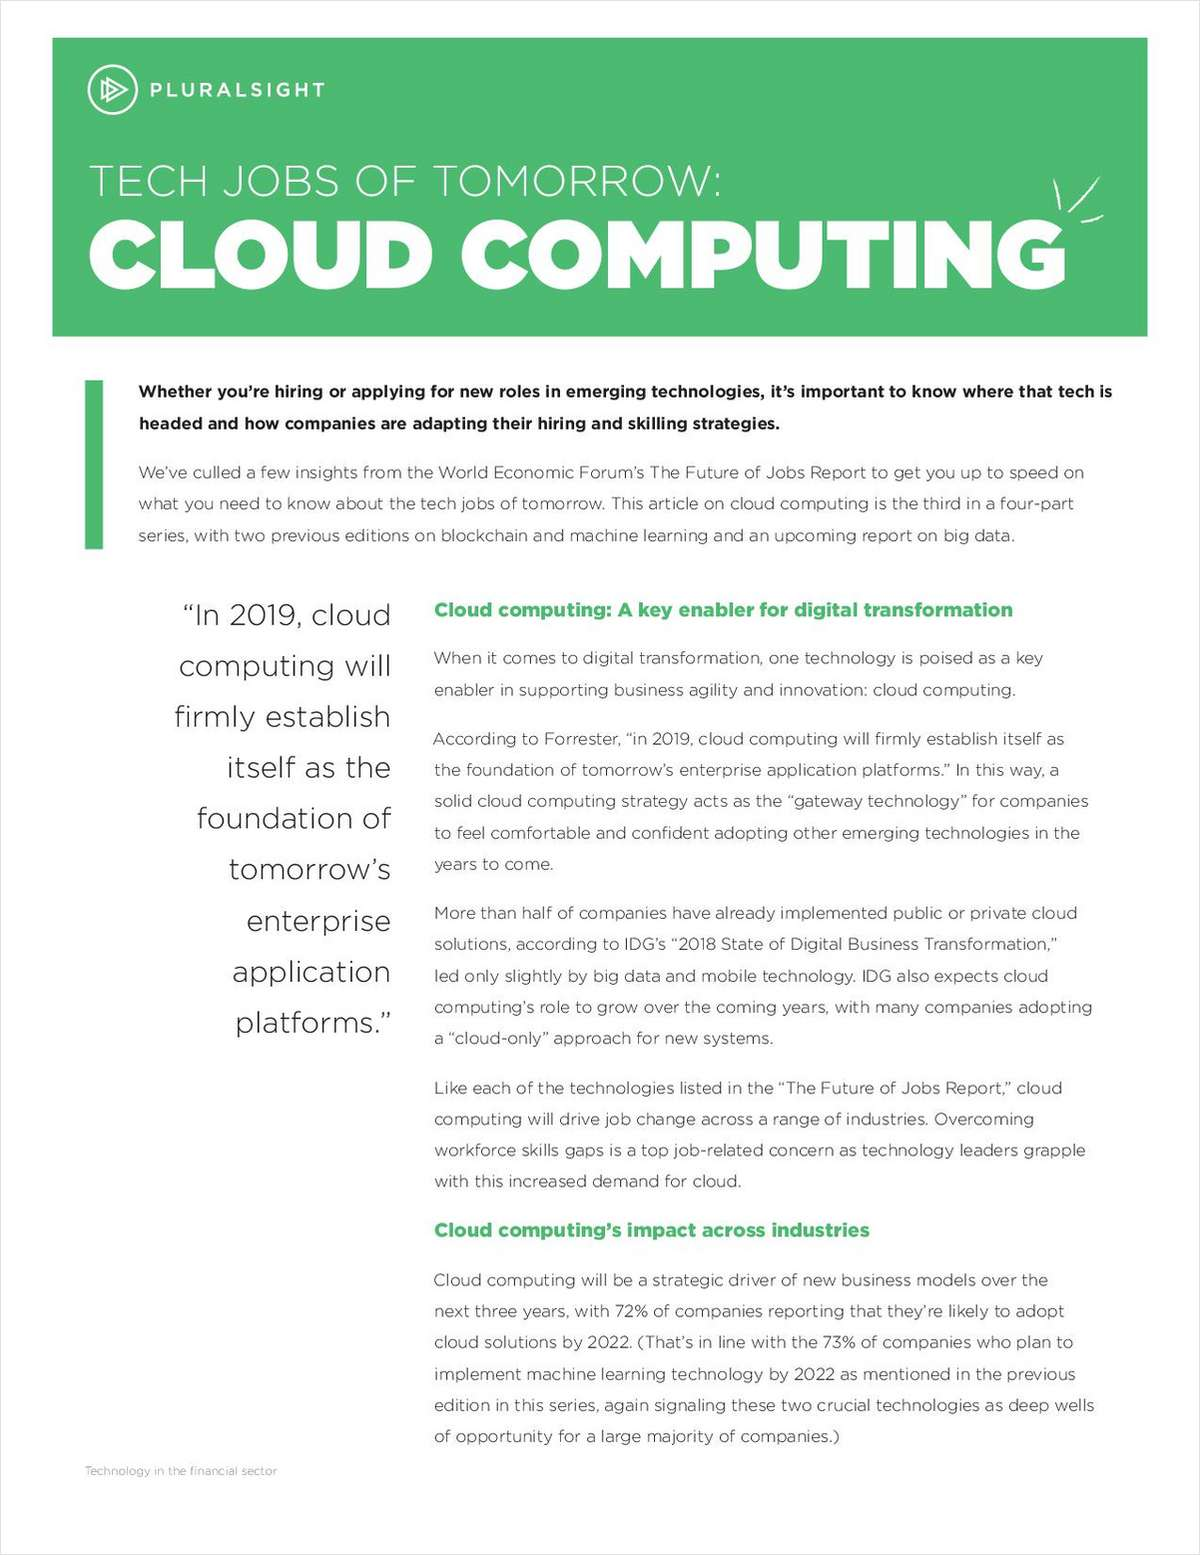 Tech Job of Tomorrow: Cloud Computing, Free Pluralsight Article